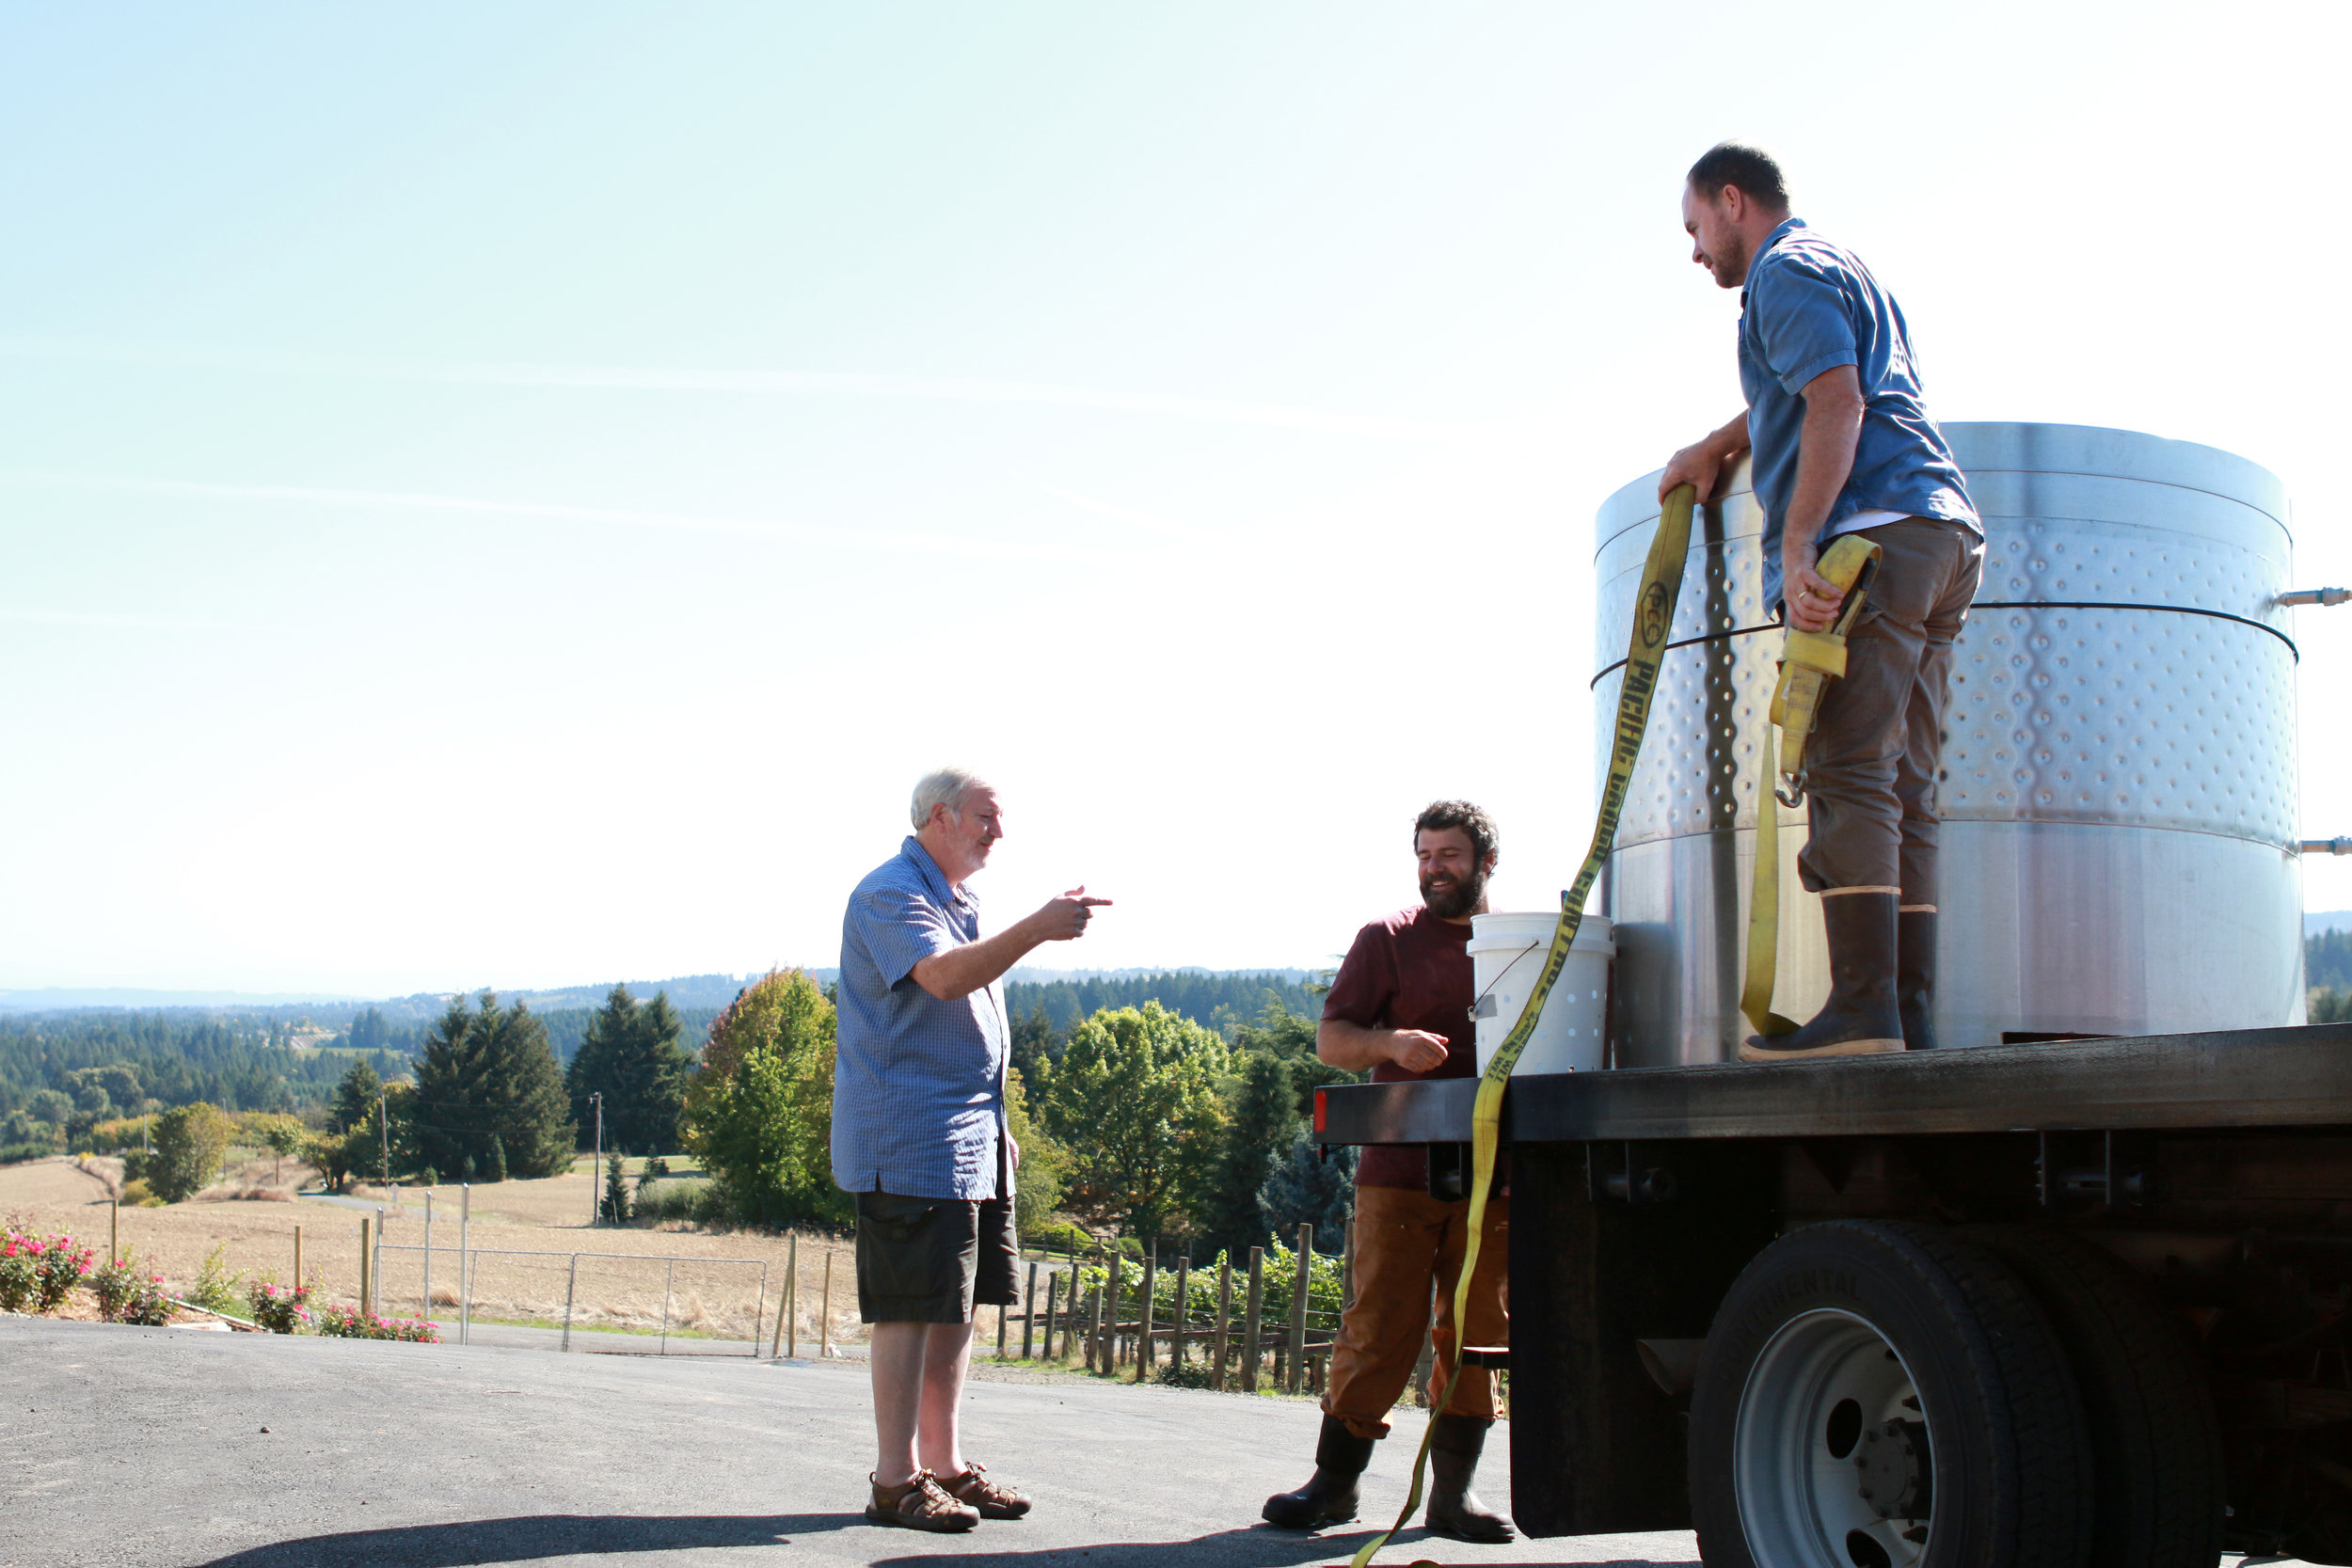 Steve Hendricks and Andrew Kirkland of Ruby Vineyard & Winery receiving fermentation tanks from Eric Hamacher during Harvest 2016. Eric has been the winemaking consultant for Ruby since 2015.